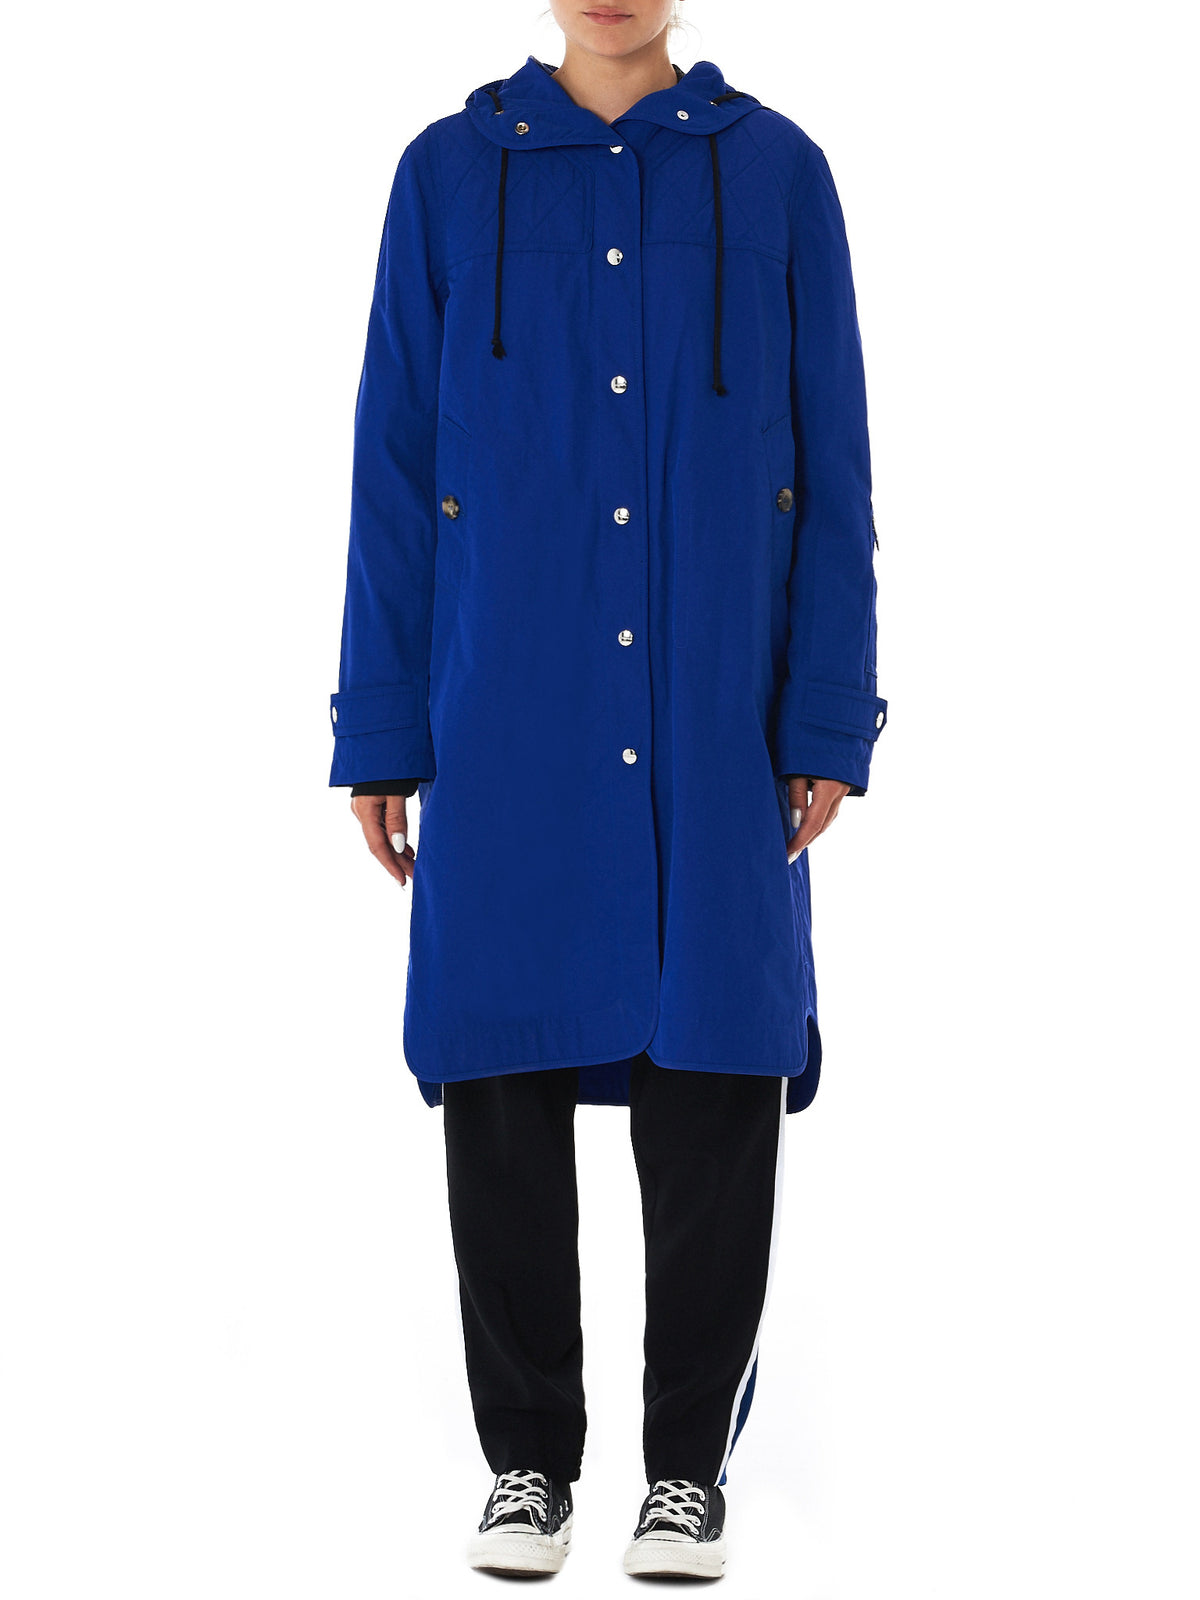 Tim Coppens- HLorenzo- raincoat front view